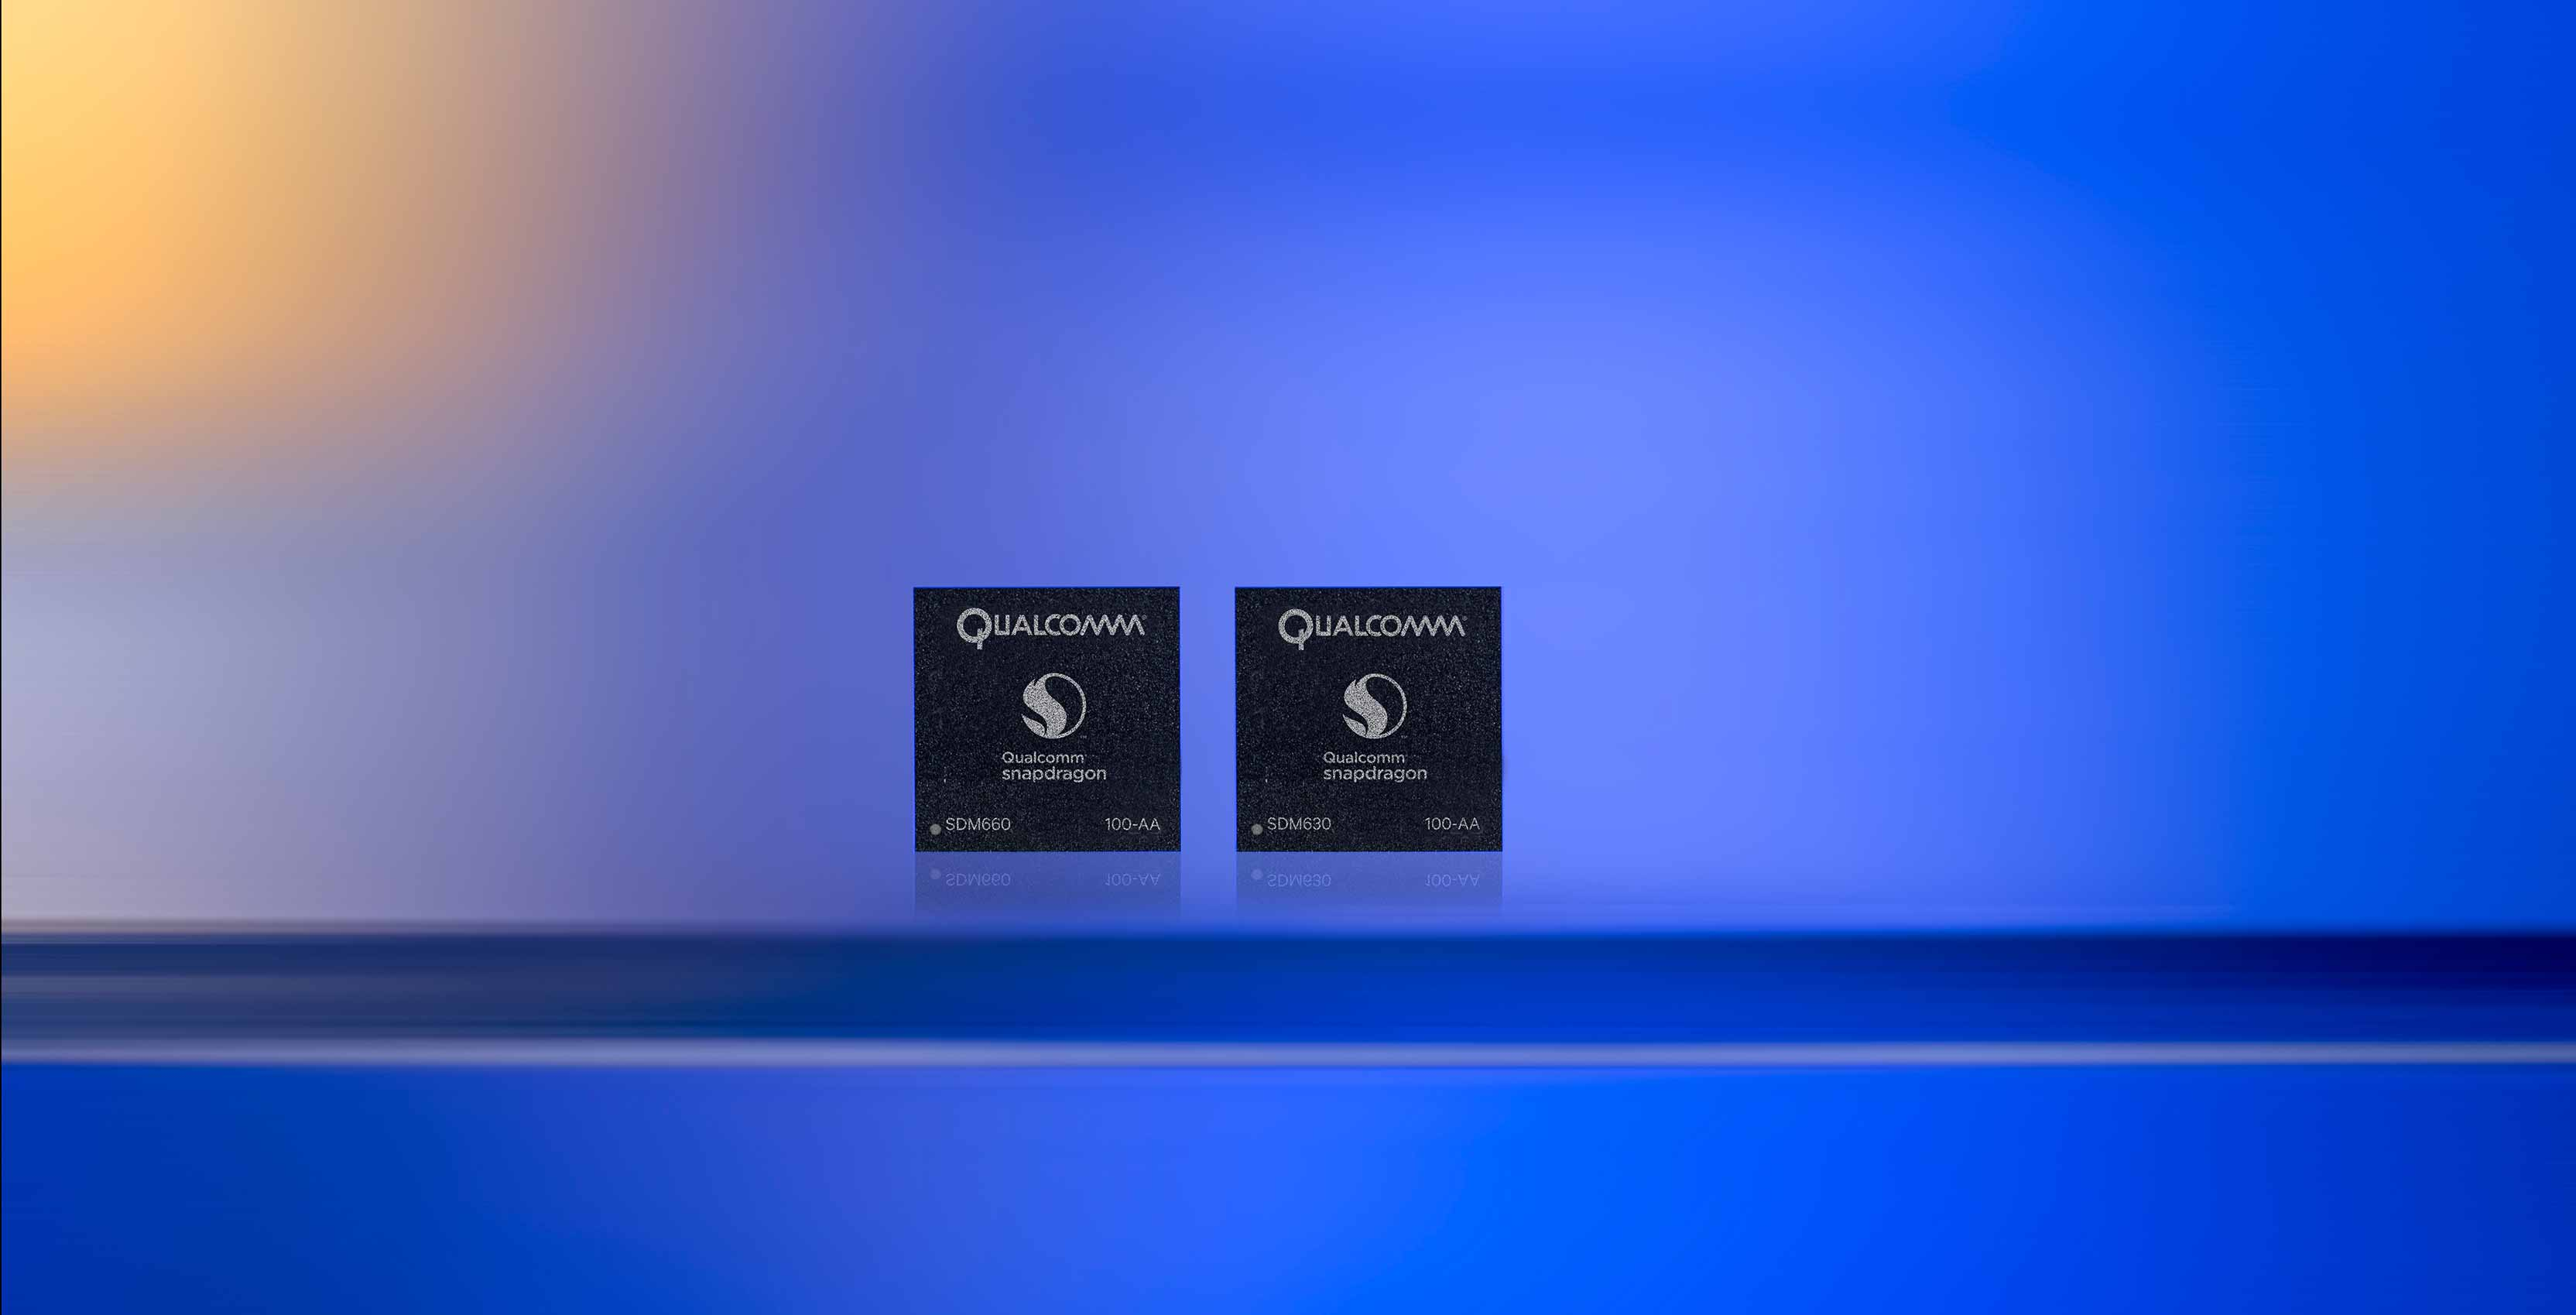 qualcomm snapdragon 630 and 660